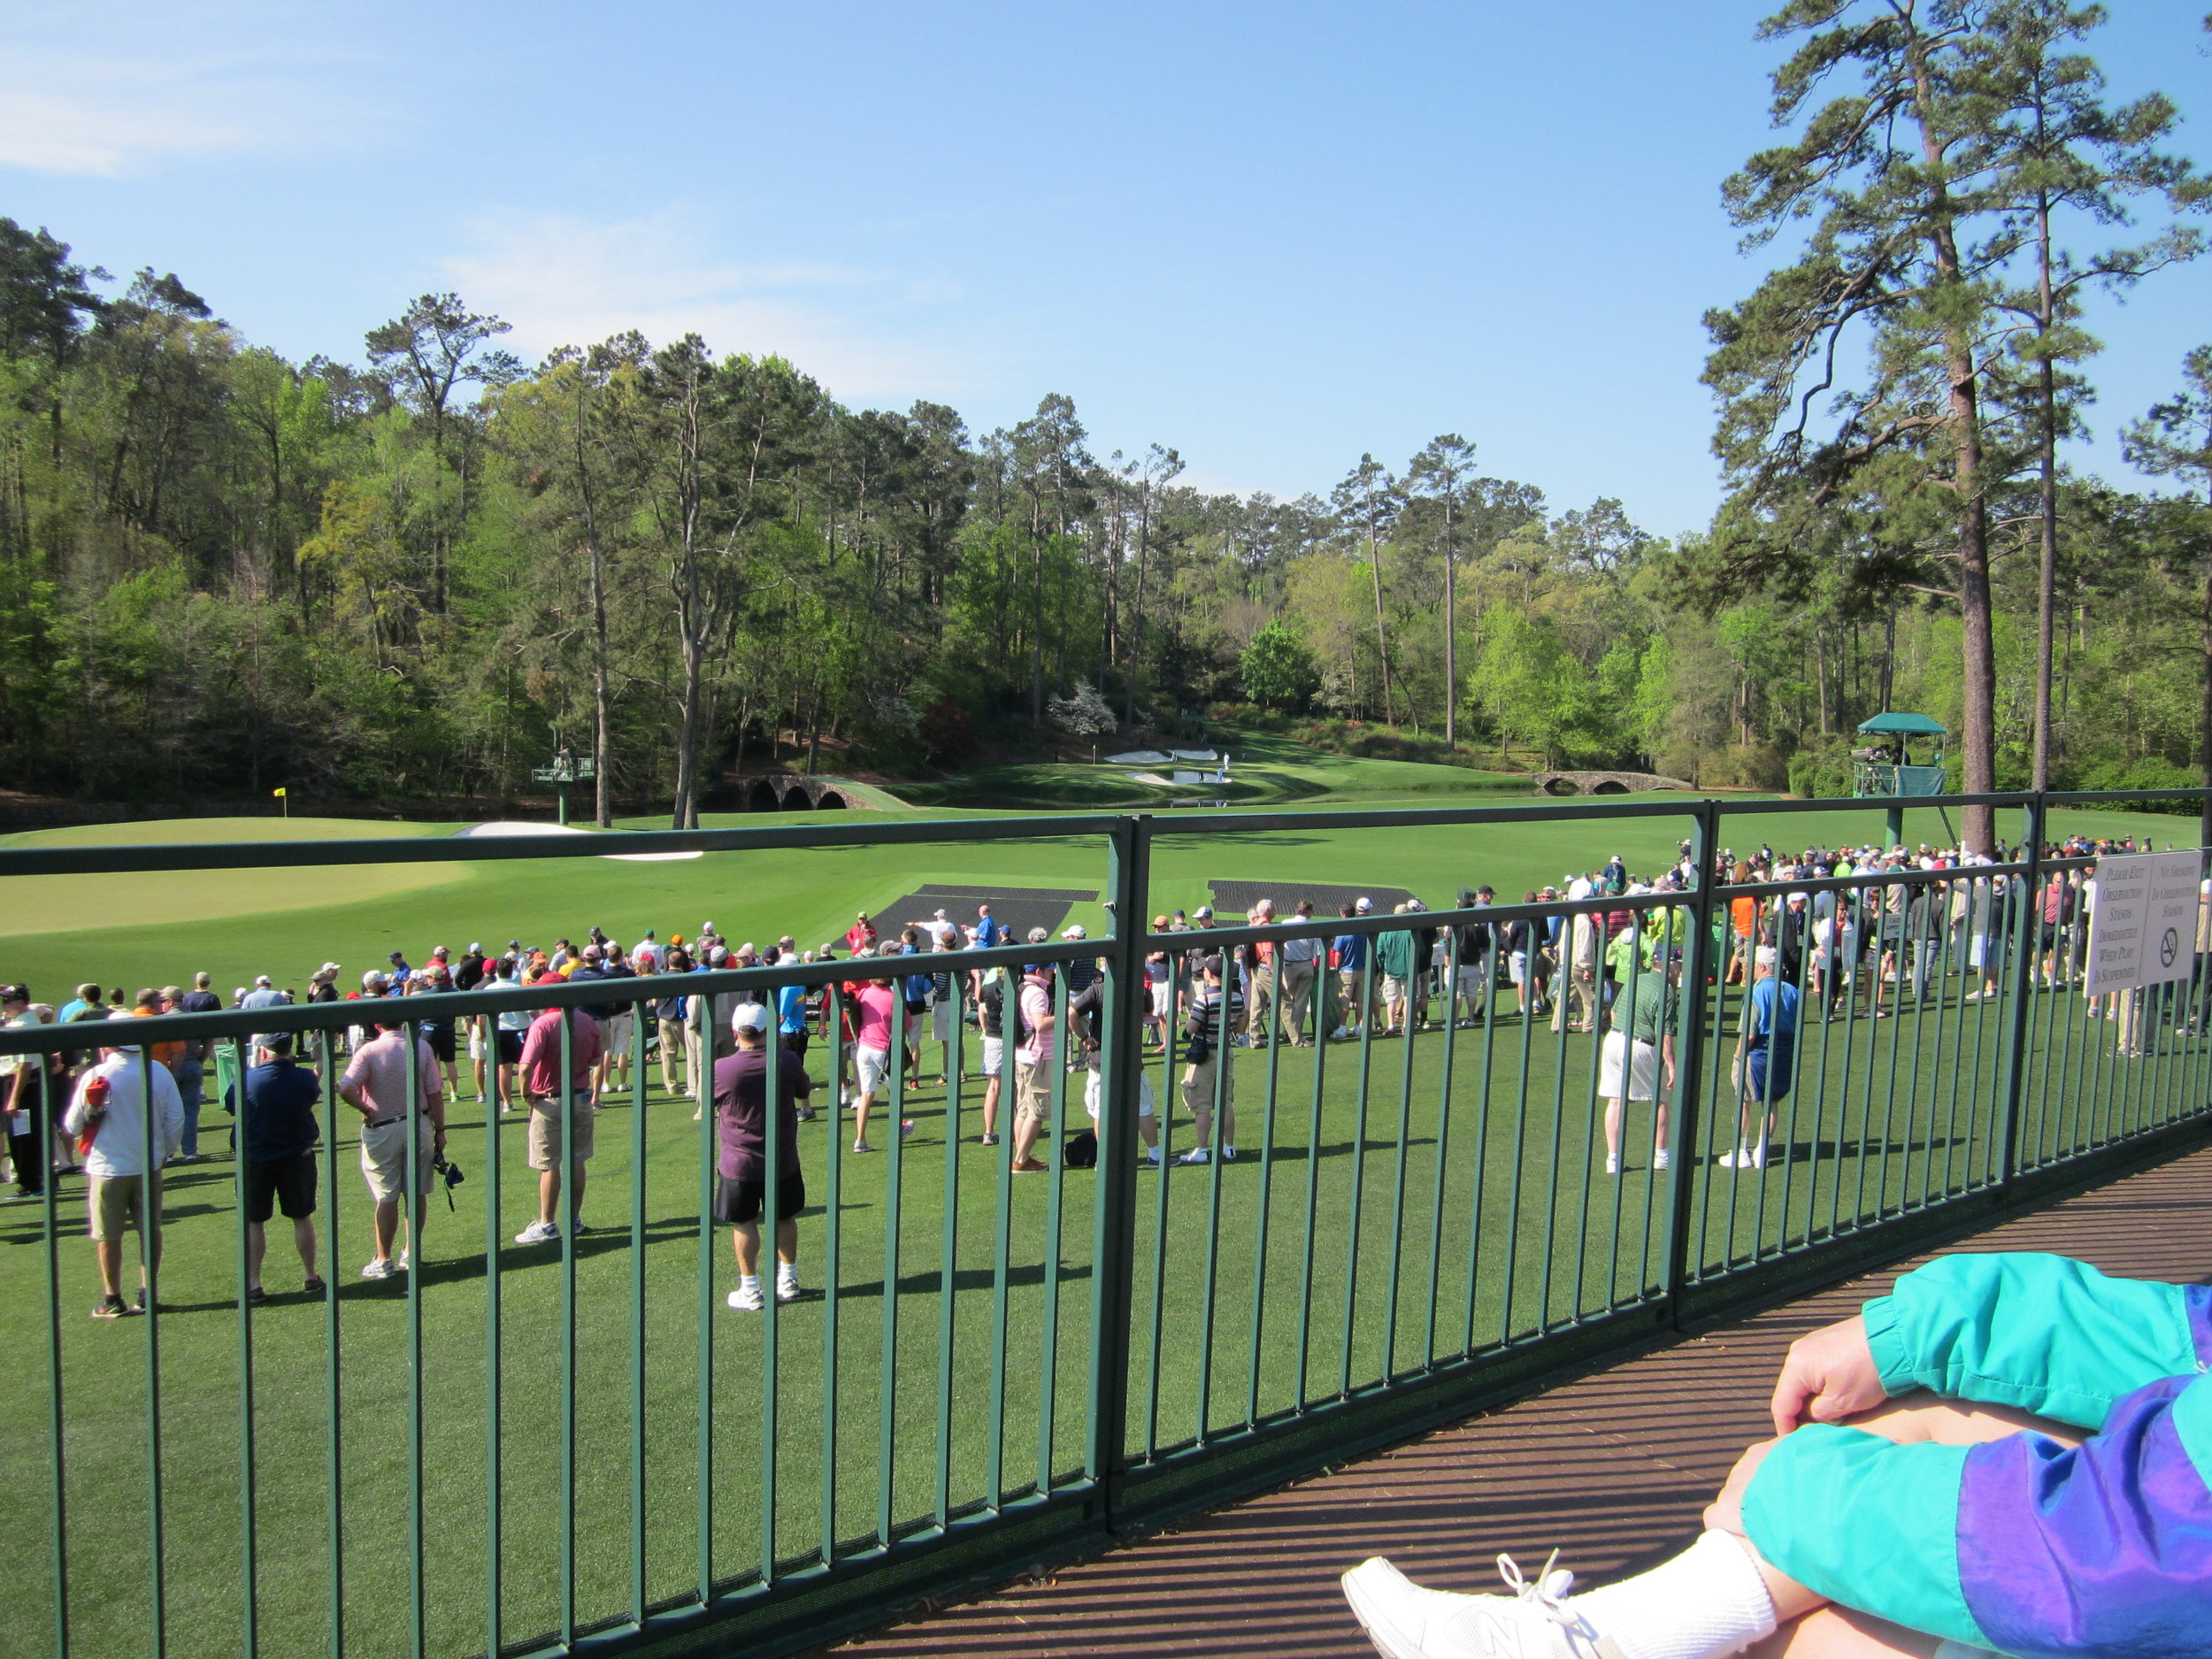 View from the stands at Amen Corner.